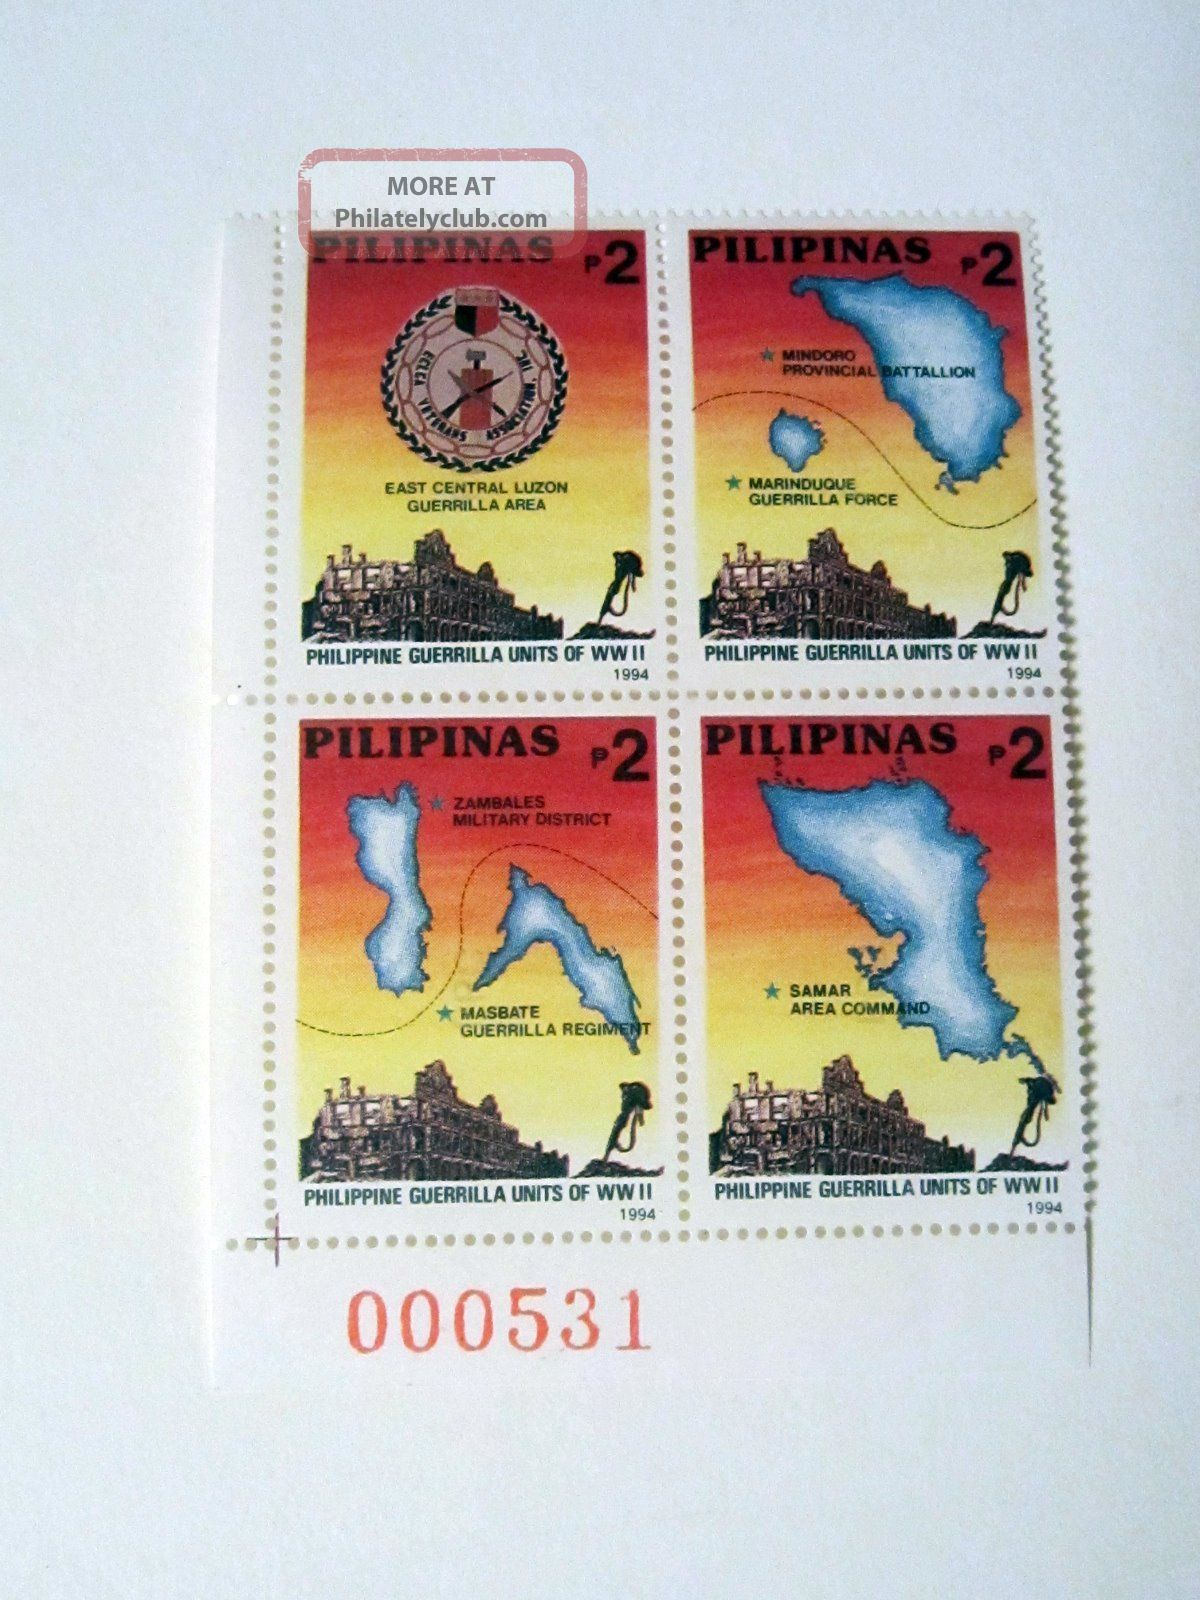 Philippines Pilipinas Guerrilla Units Of War Ii 1994 Plate Stamp Asia photo